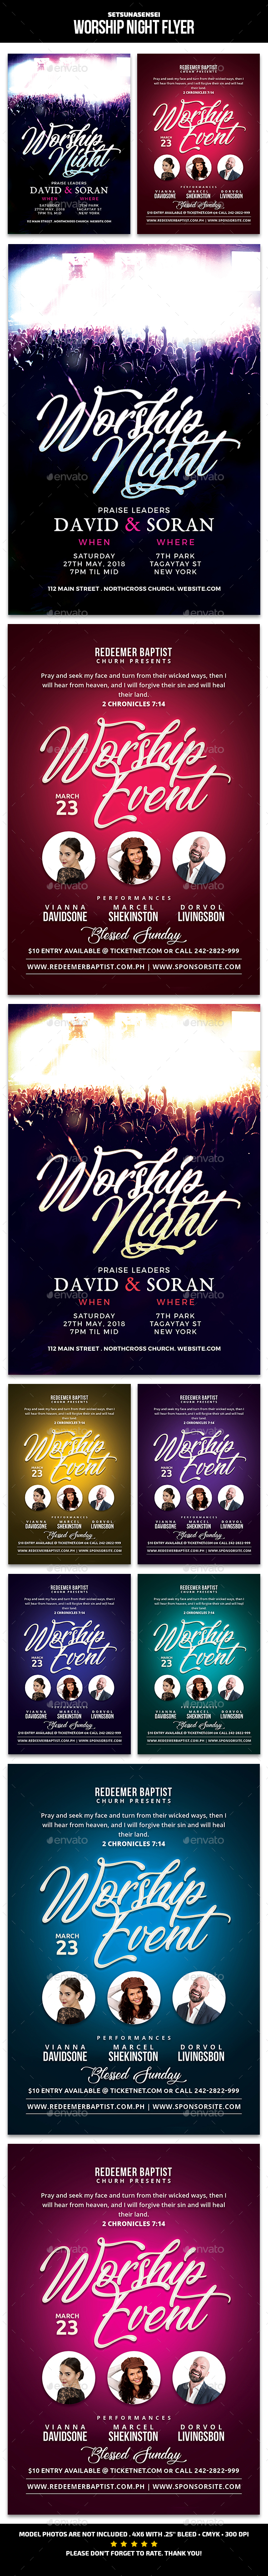 Worship Night Flyer - Church Flyers